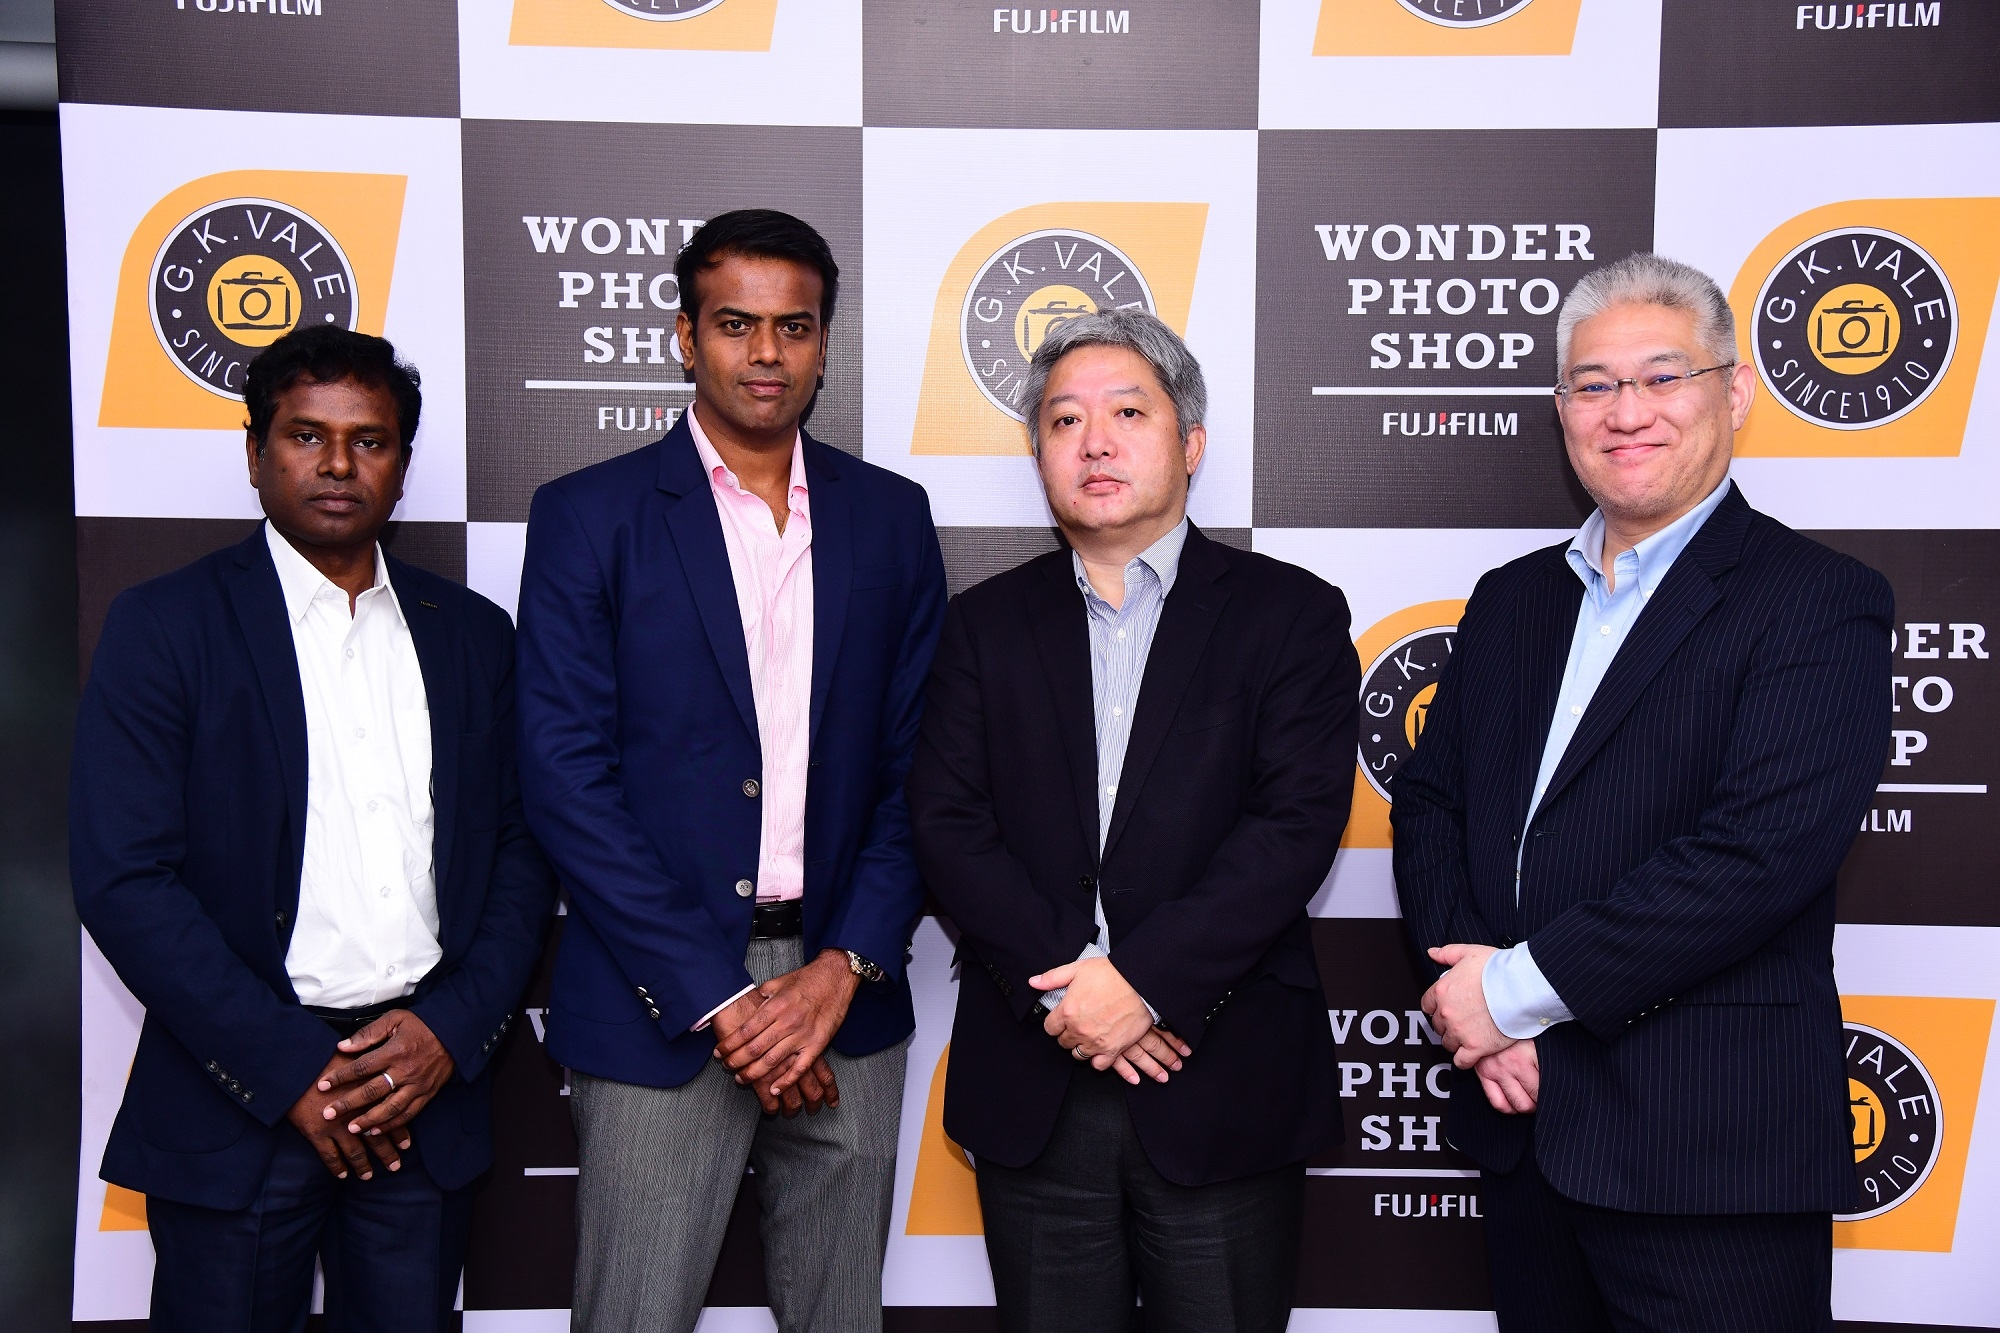 Fujifilm Indian & GK Vale Opens First Ever Co-branded Wonder Photo Shop in Bengaluru